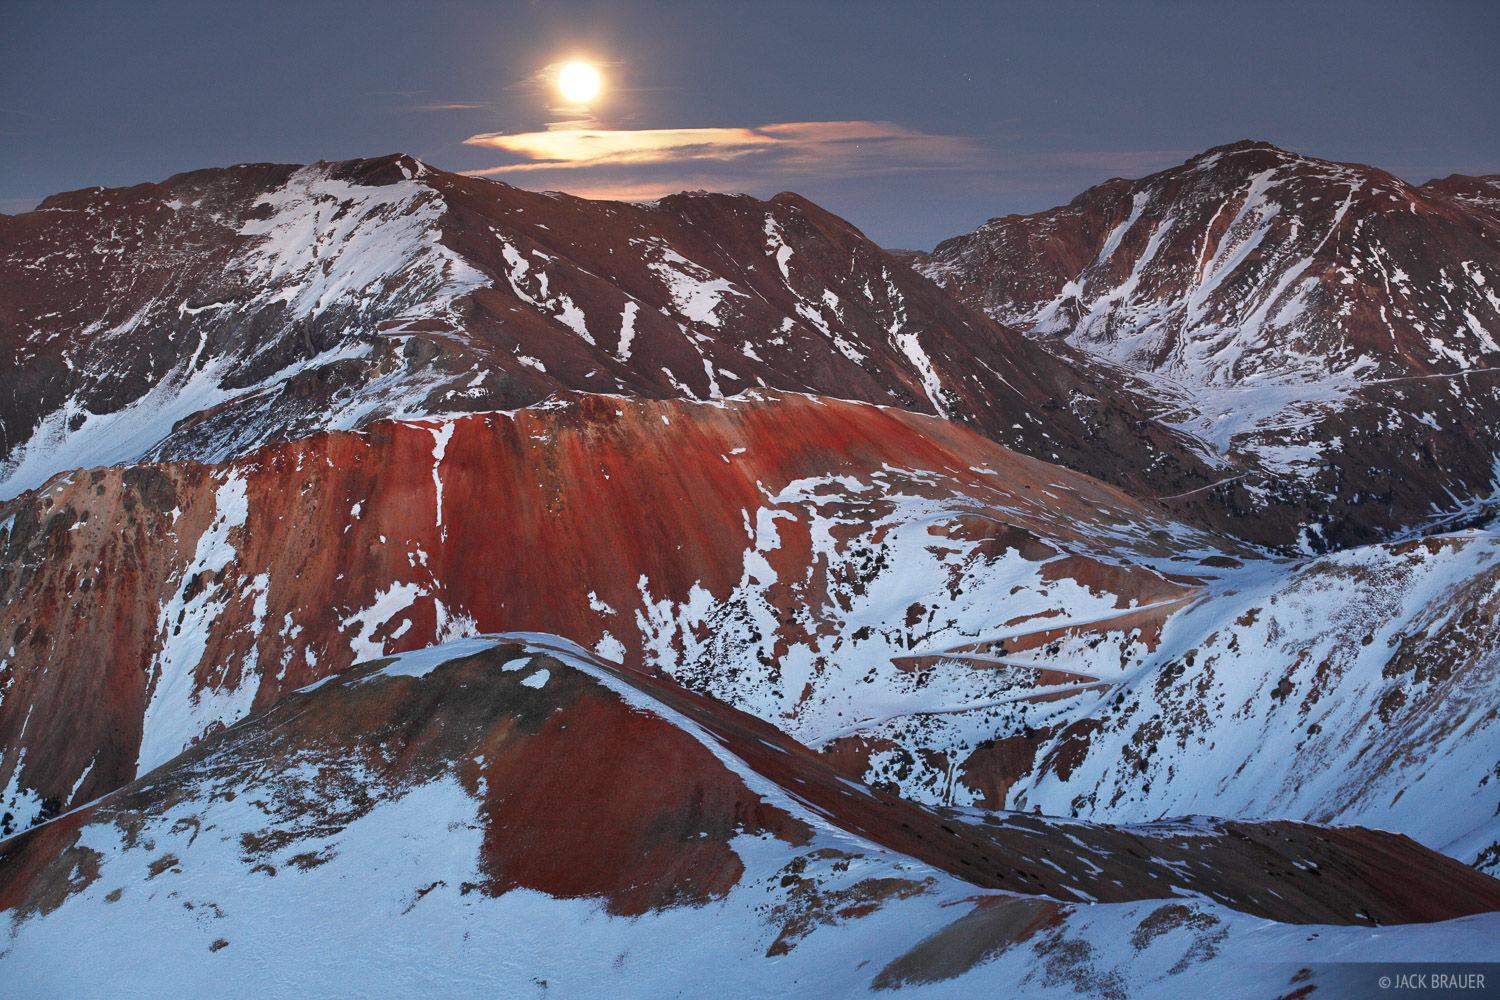 A full moon rises over Brown Mountain, as seen from the summit of Red 3, November.